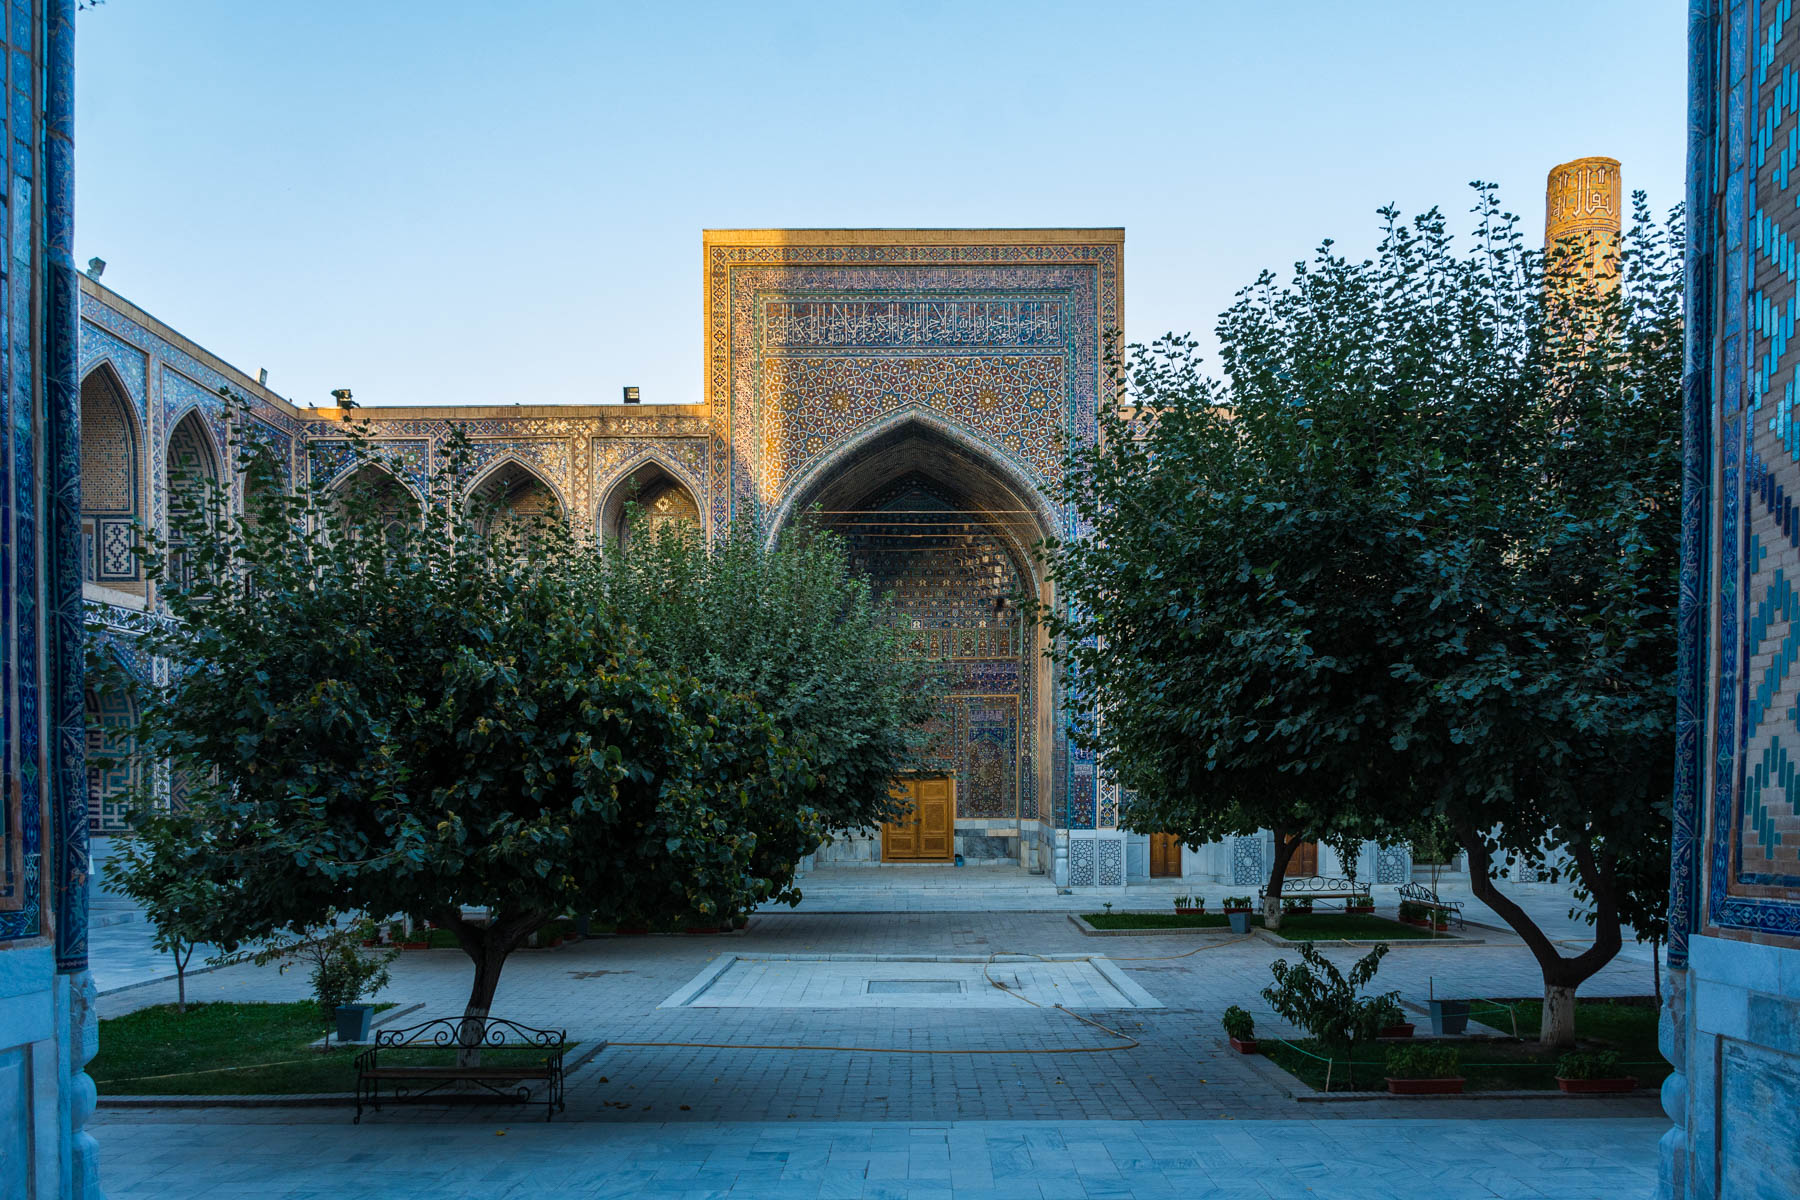 Why you need to see sunrise in Uzbekistan - A madrasa at the Registan at sunrise - Lost With Purpose